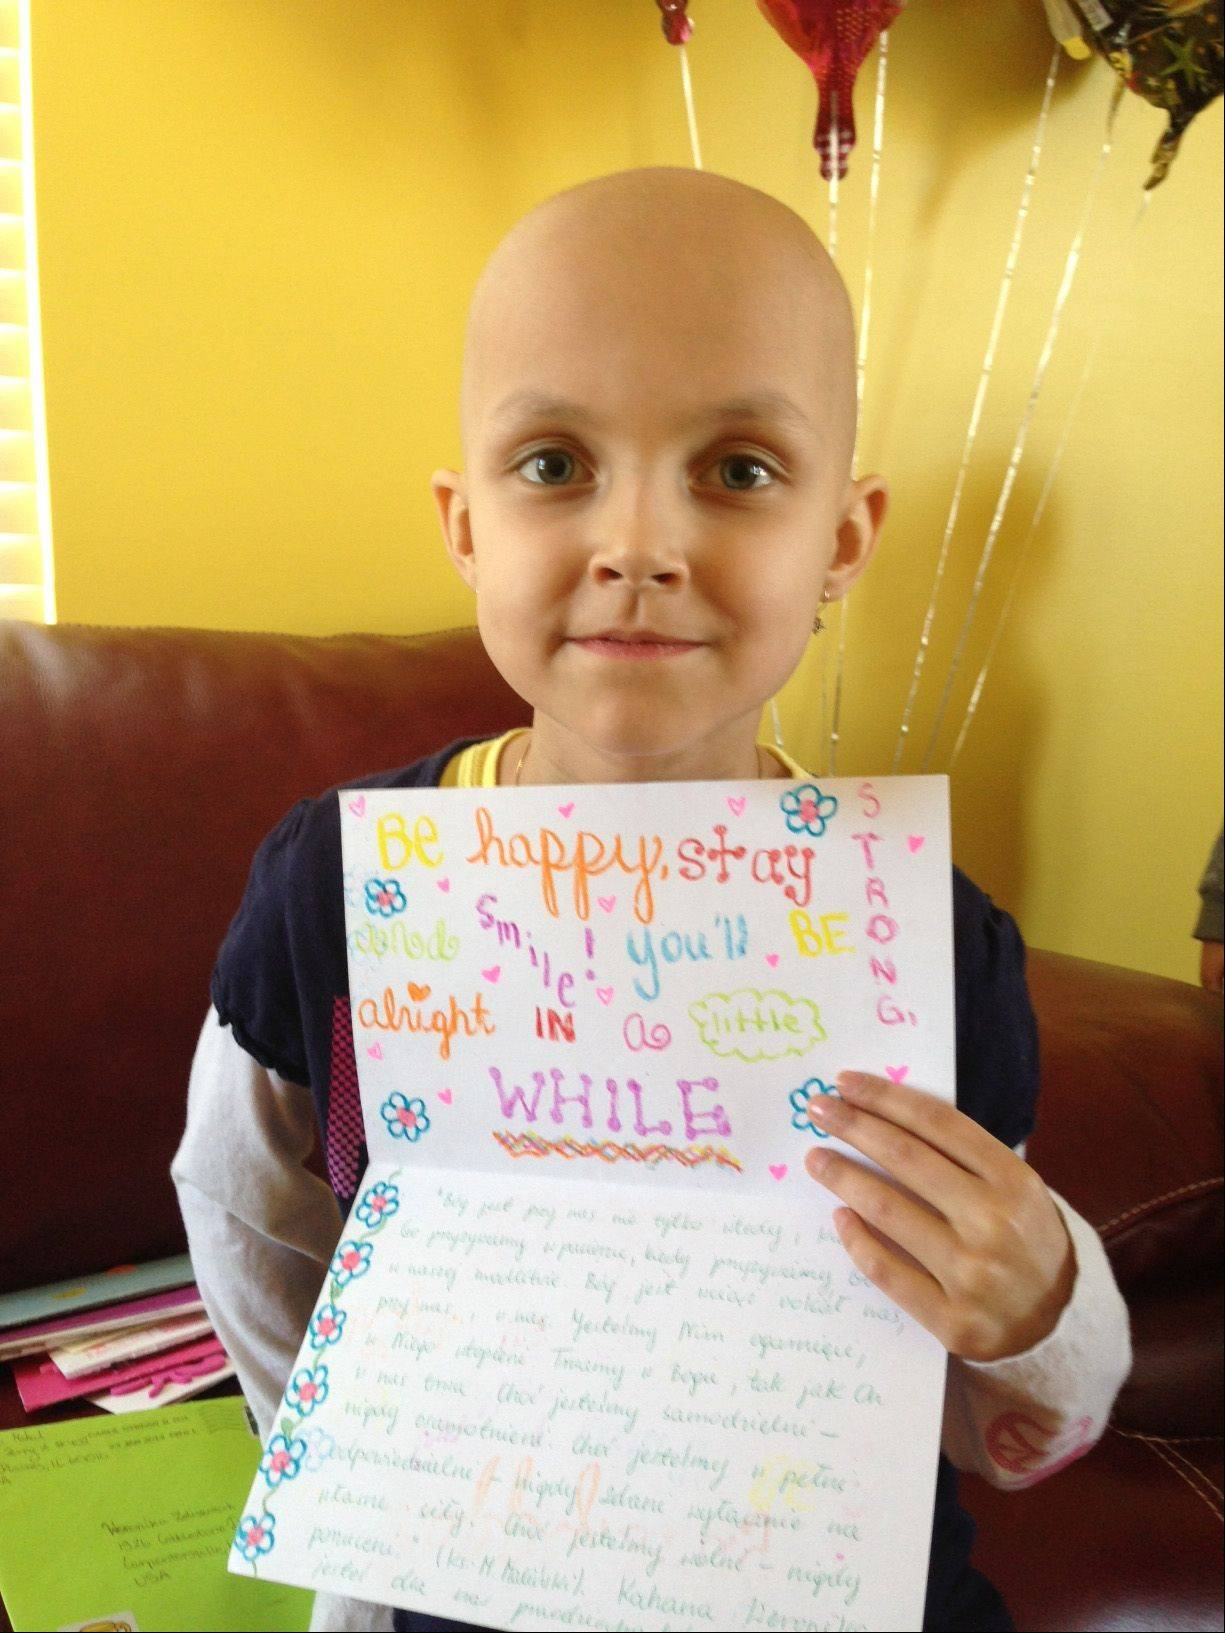 Weronika Zeliszczak, a 7-year-old Carpentersville girl battling leukemia, holds one of the more than 200 cards she received in the mail Tuesday from well wishers. Her mother, Katarzyna Zeliszczak, started a campaign on Facebook encouraging her friends to mail cards to her daughter that congratulate her for completing an intense round of chemotherapy. Weronika hopes to return to school in March.